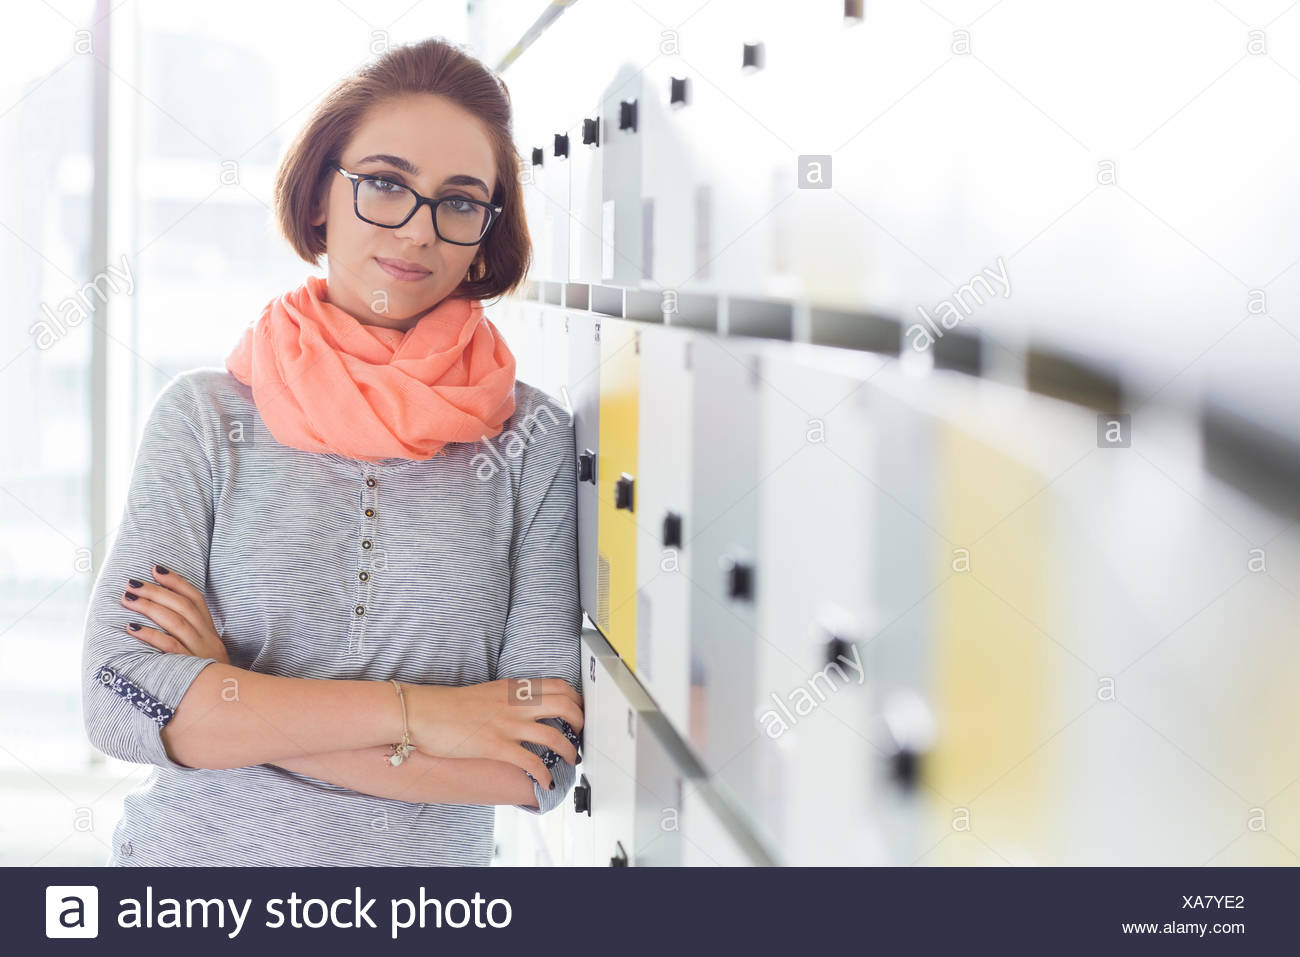 Portrait of confident businesswoman standing in vestiaire creative office Photo Stock